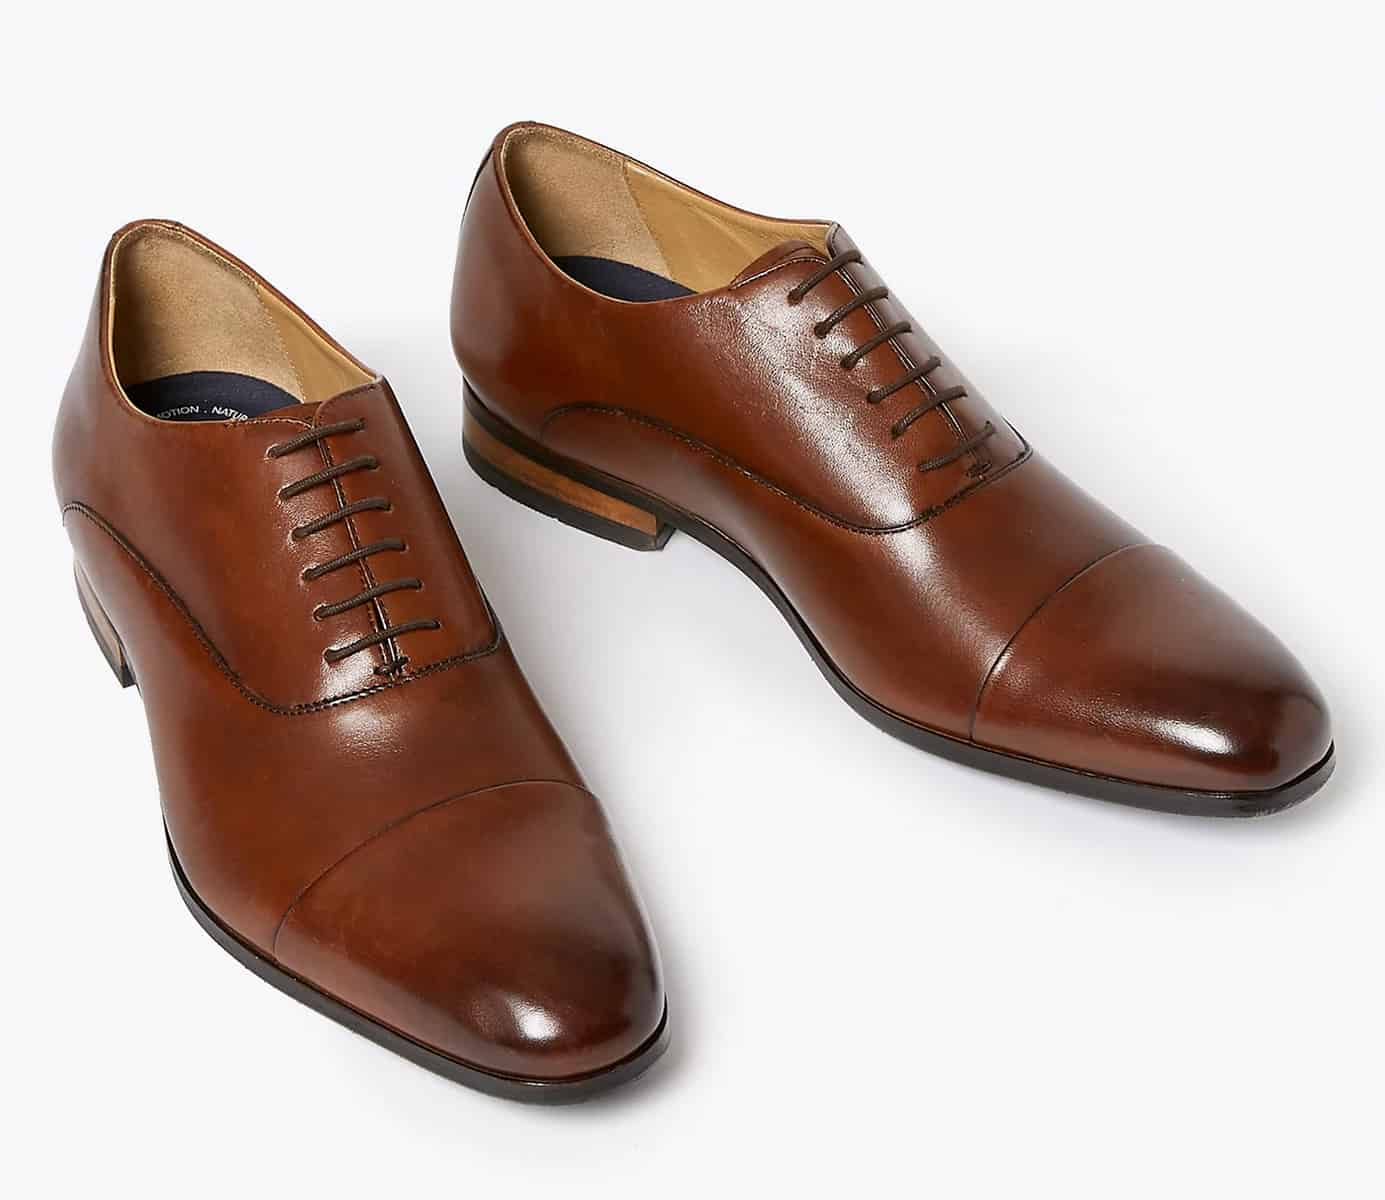 Marks & Spencer oxford shoes